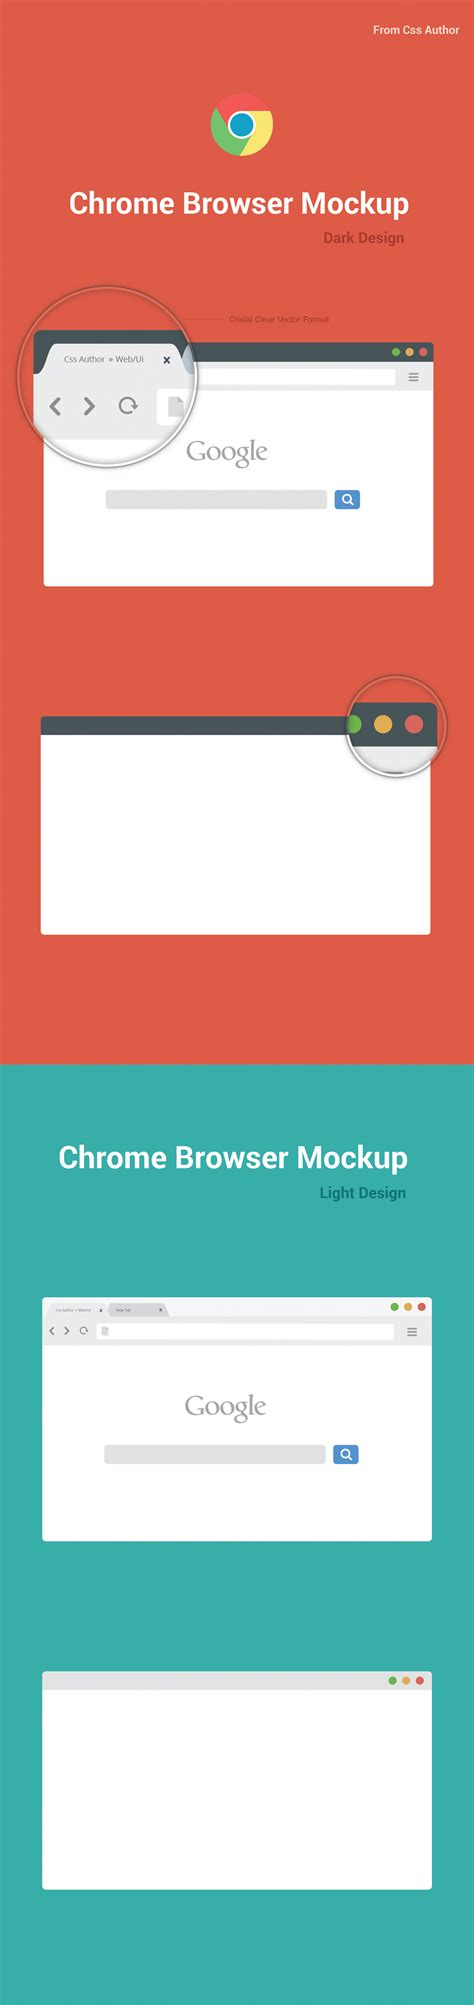 chrome browser mockup design template vector for free